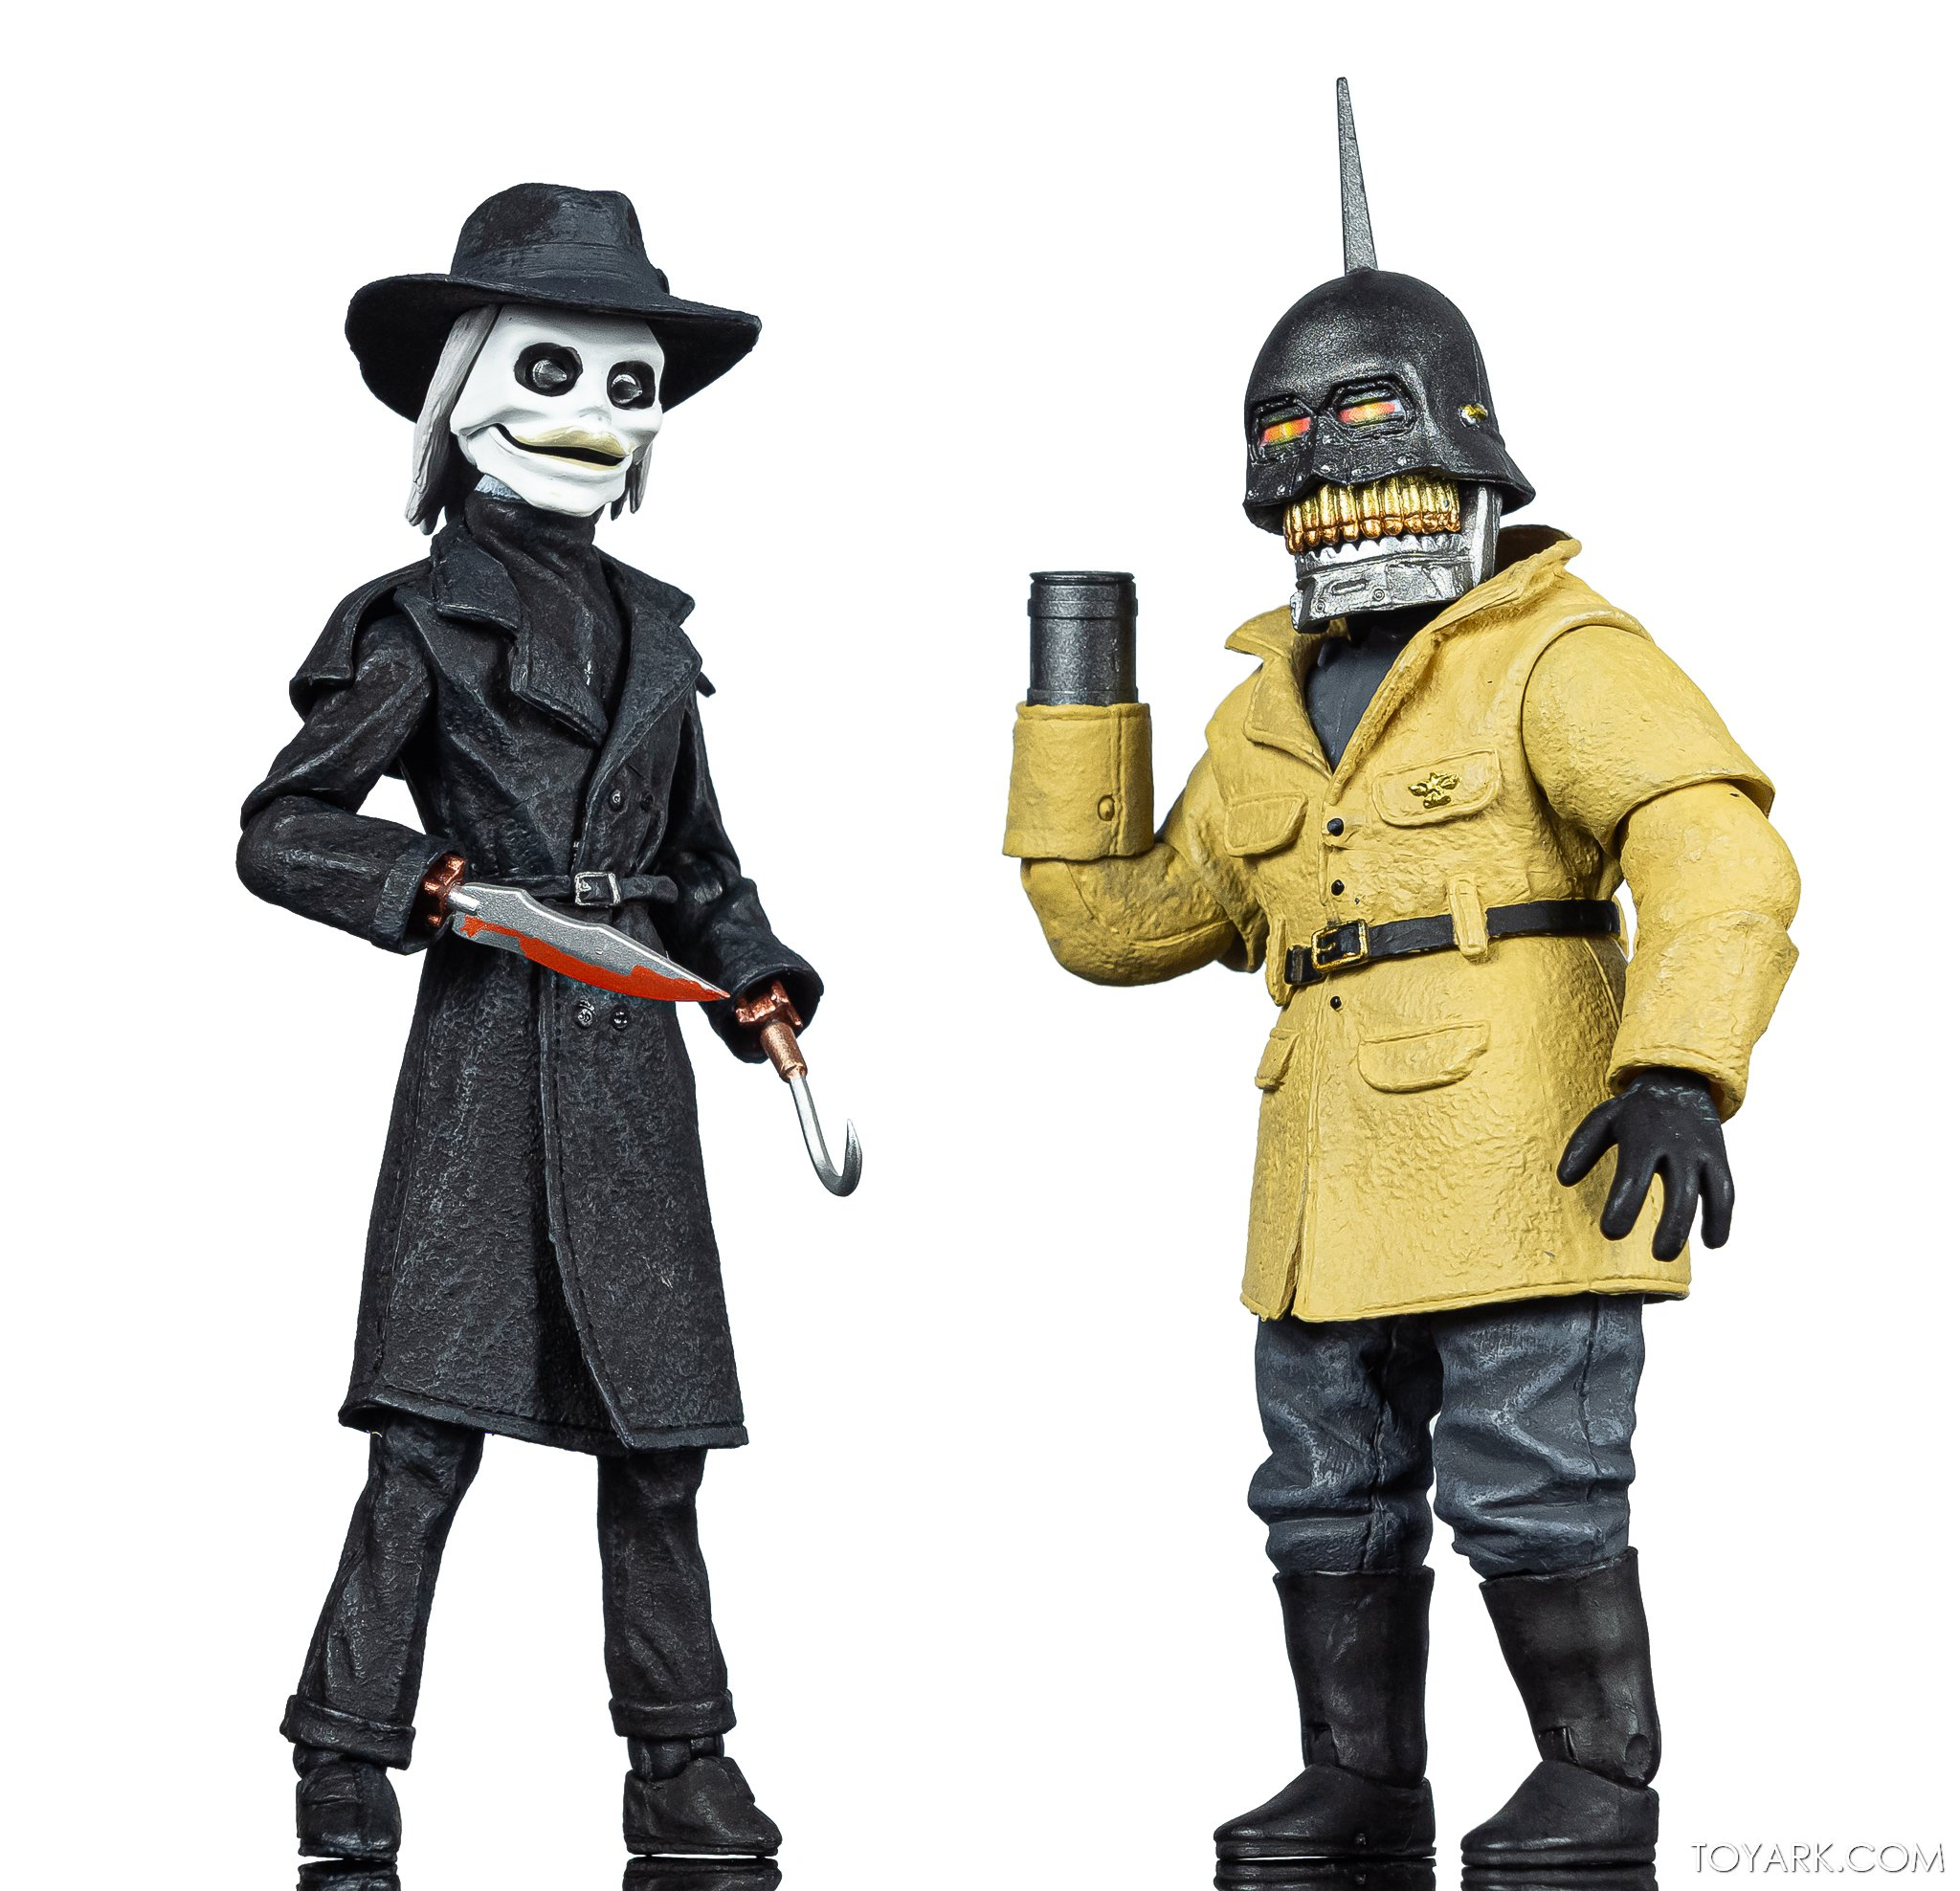 https://news.toyark.com/wp-content/uploads/sites/4/2021/04/NECA-Puppet-Master-Blade-and-Torch-007.jpg